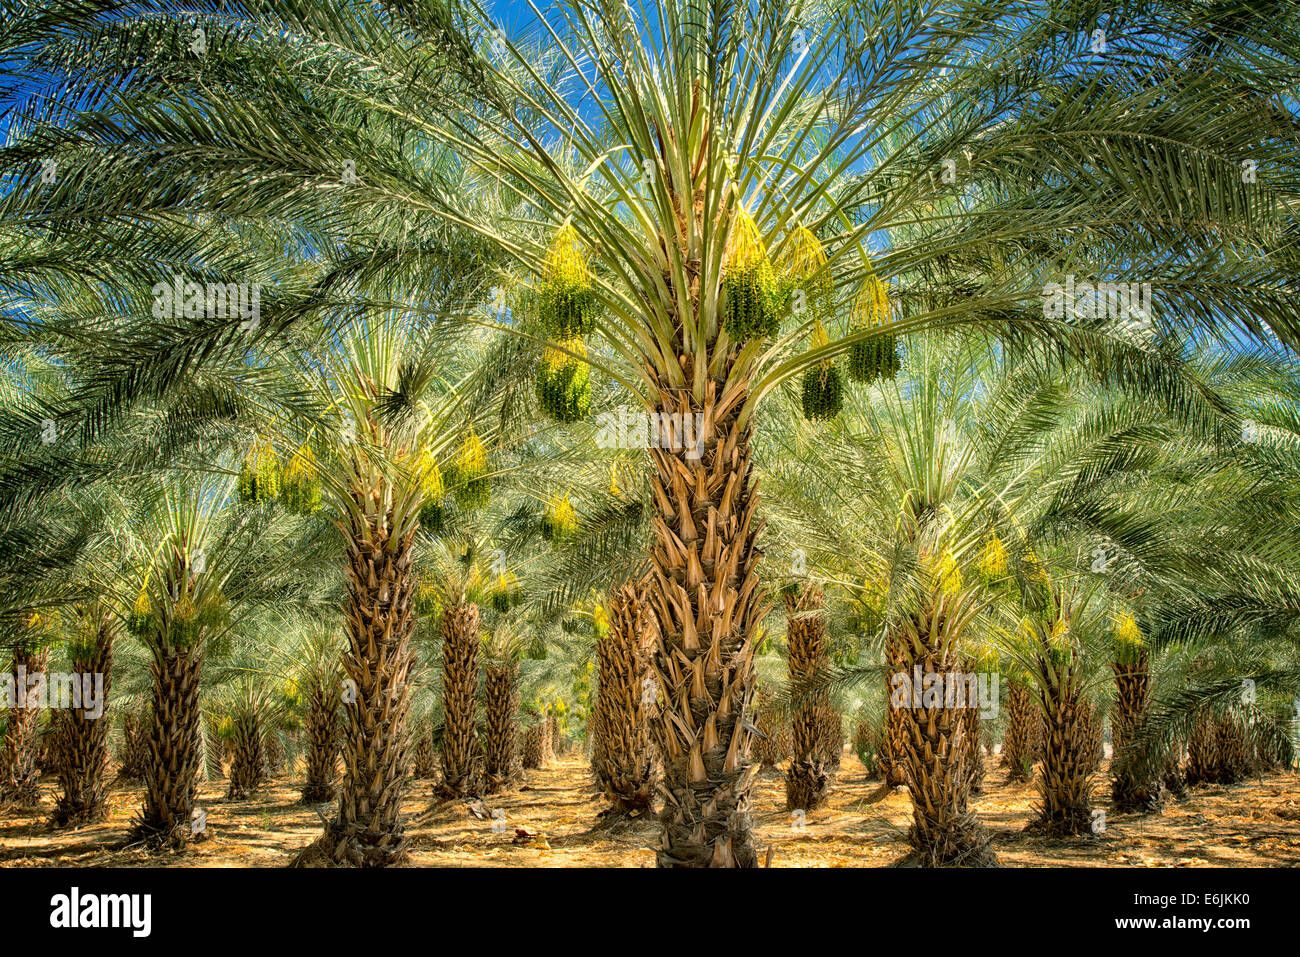 Date palm tree orchard with ripening fruit. Indio, California - Stock Image